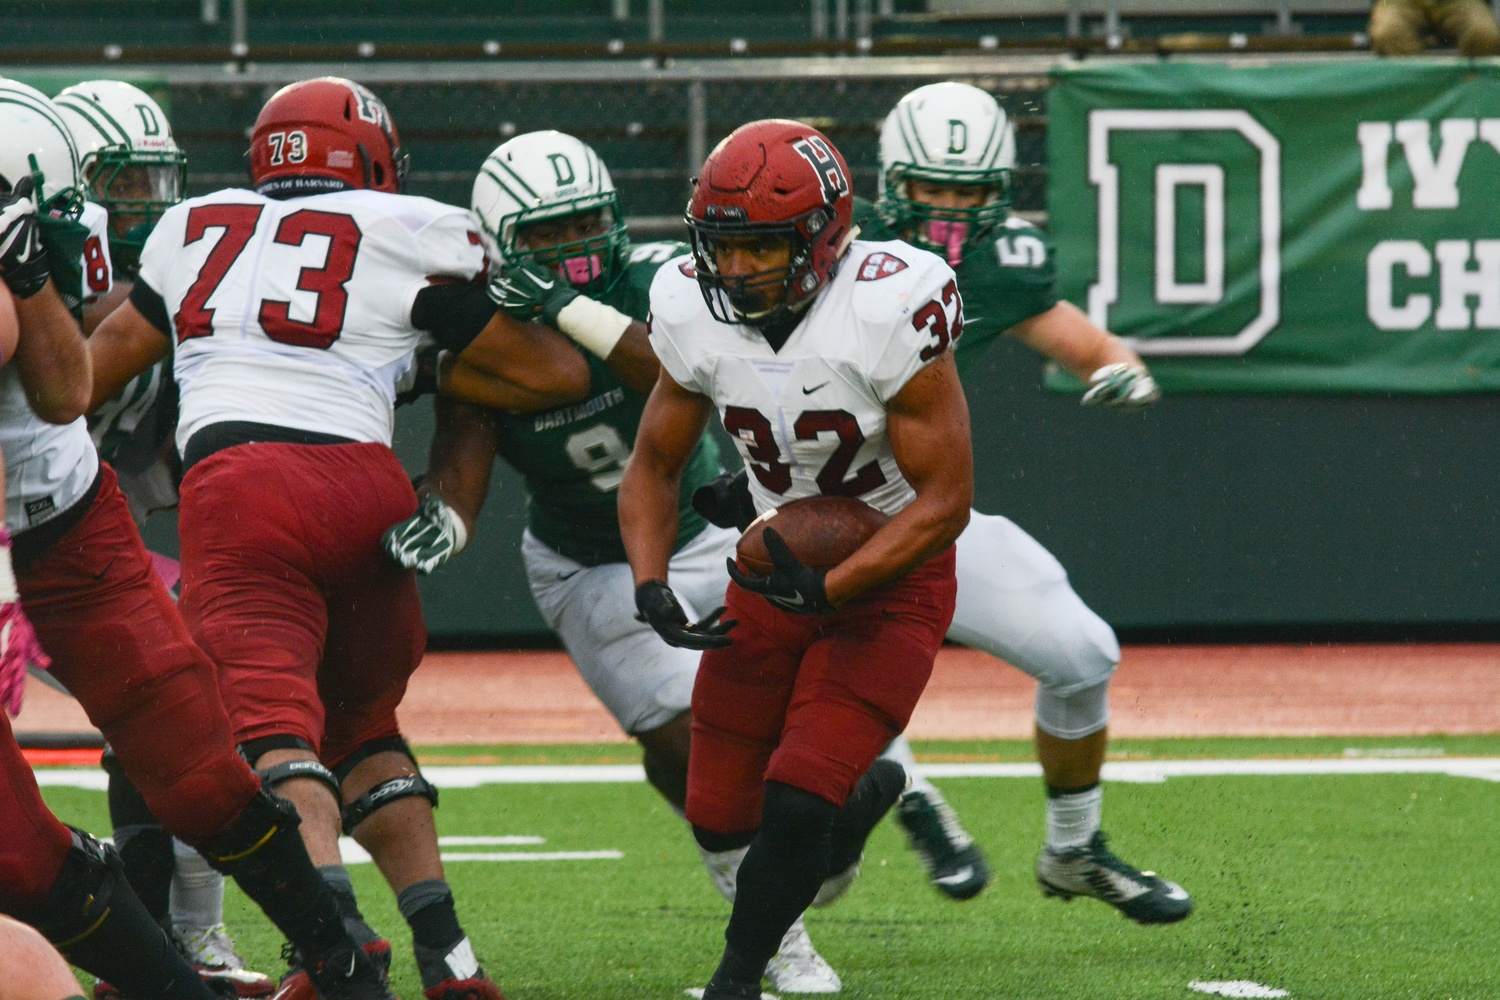 Junior running back Semar Smith, shown here in Harvard's 23-21 win over Dartmouth, leads all Harvard backs with seven touchdowns. He had 44 yards and a touchdown on 12 carries on Saturday.